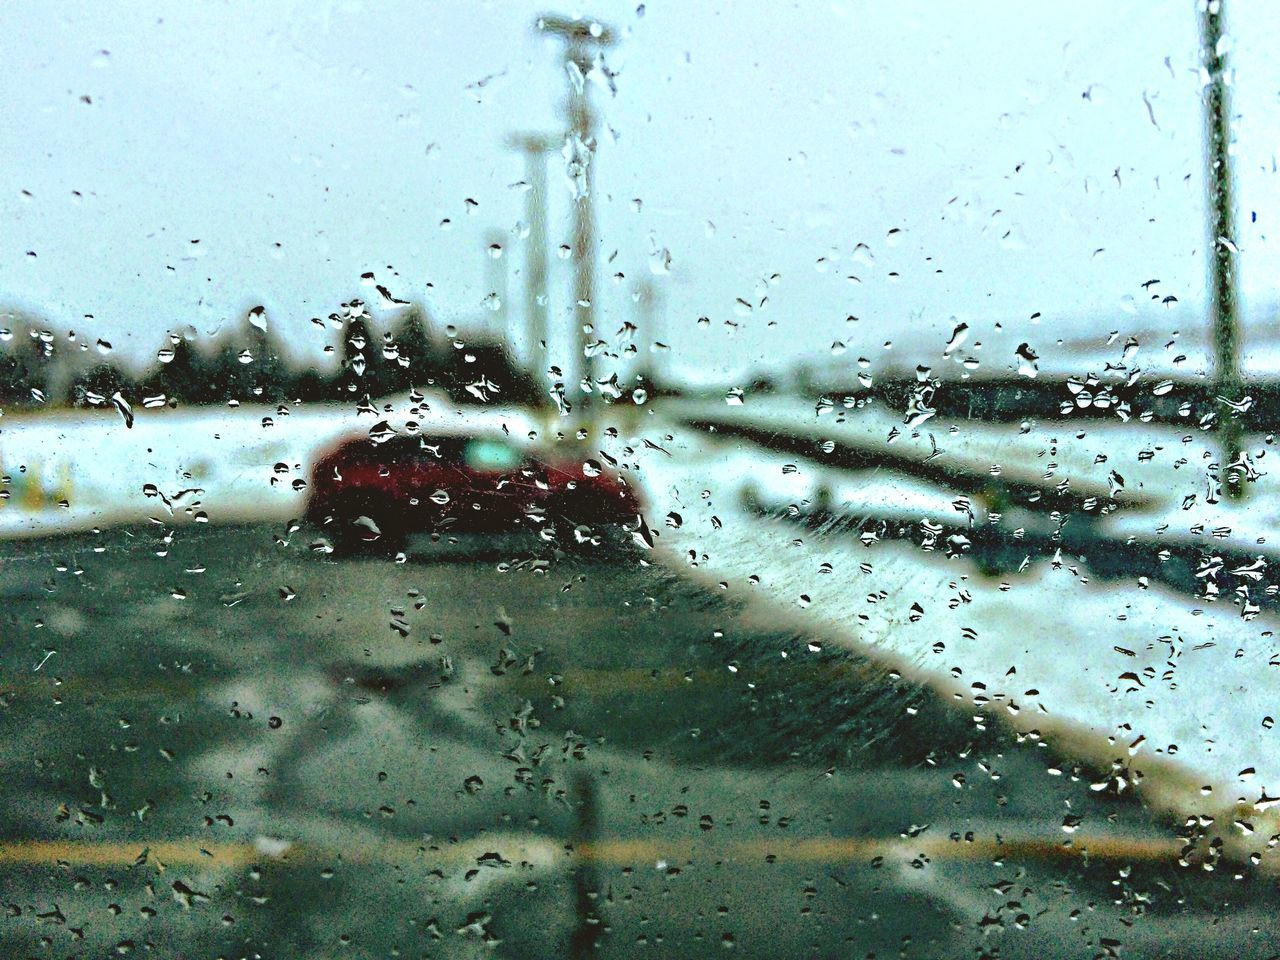 Rain - 2015 Canada My Daily Commute Taking Photos Rain Winter EyeEm Best Shots Car Window AMPt_community IPhoneography